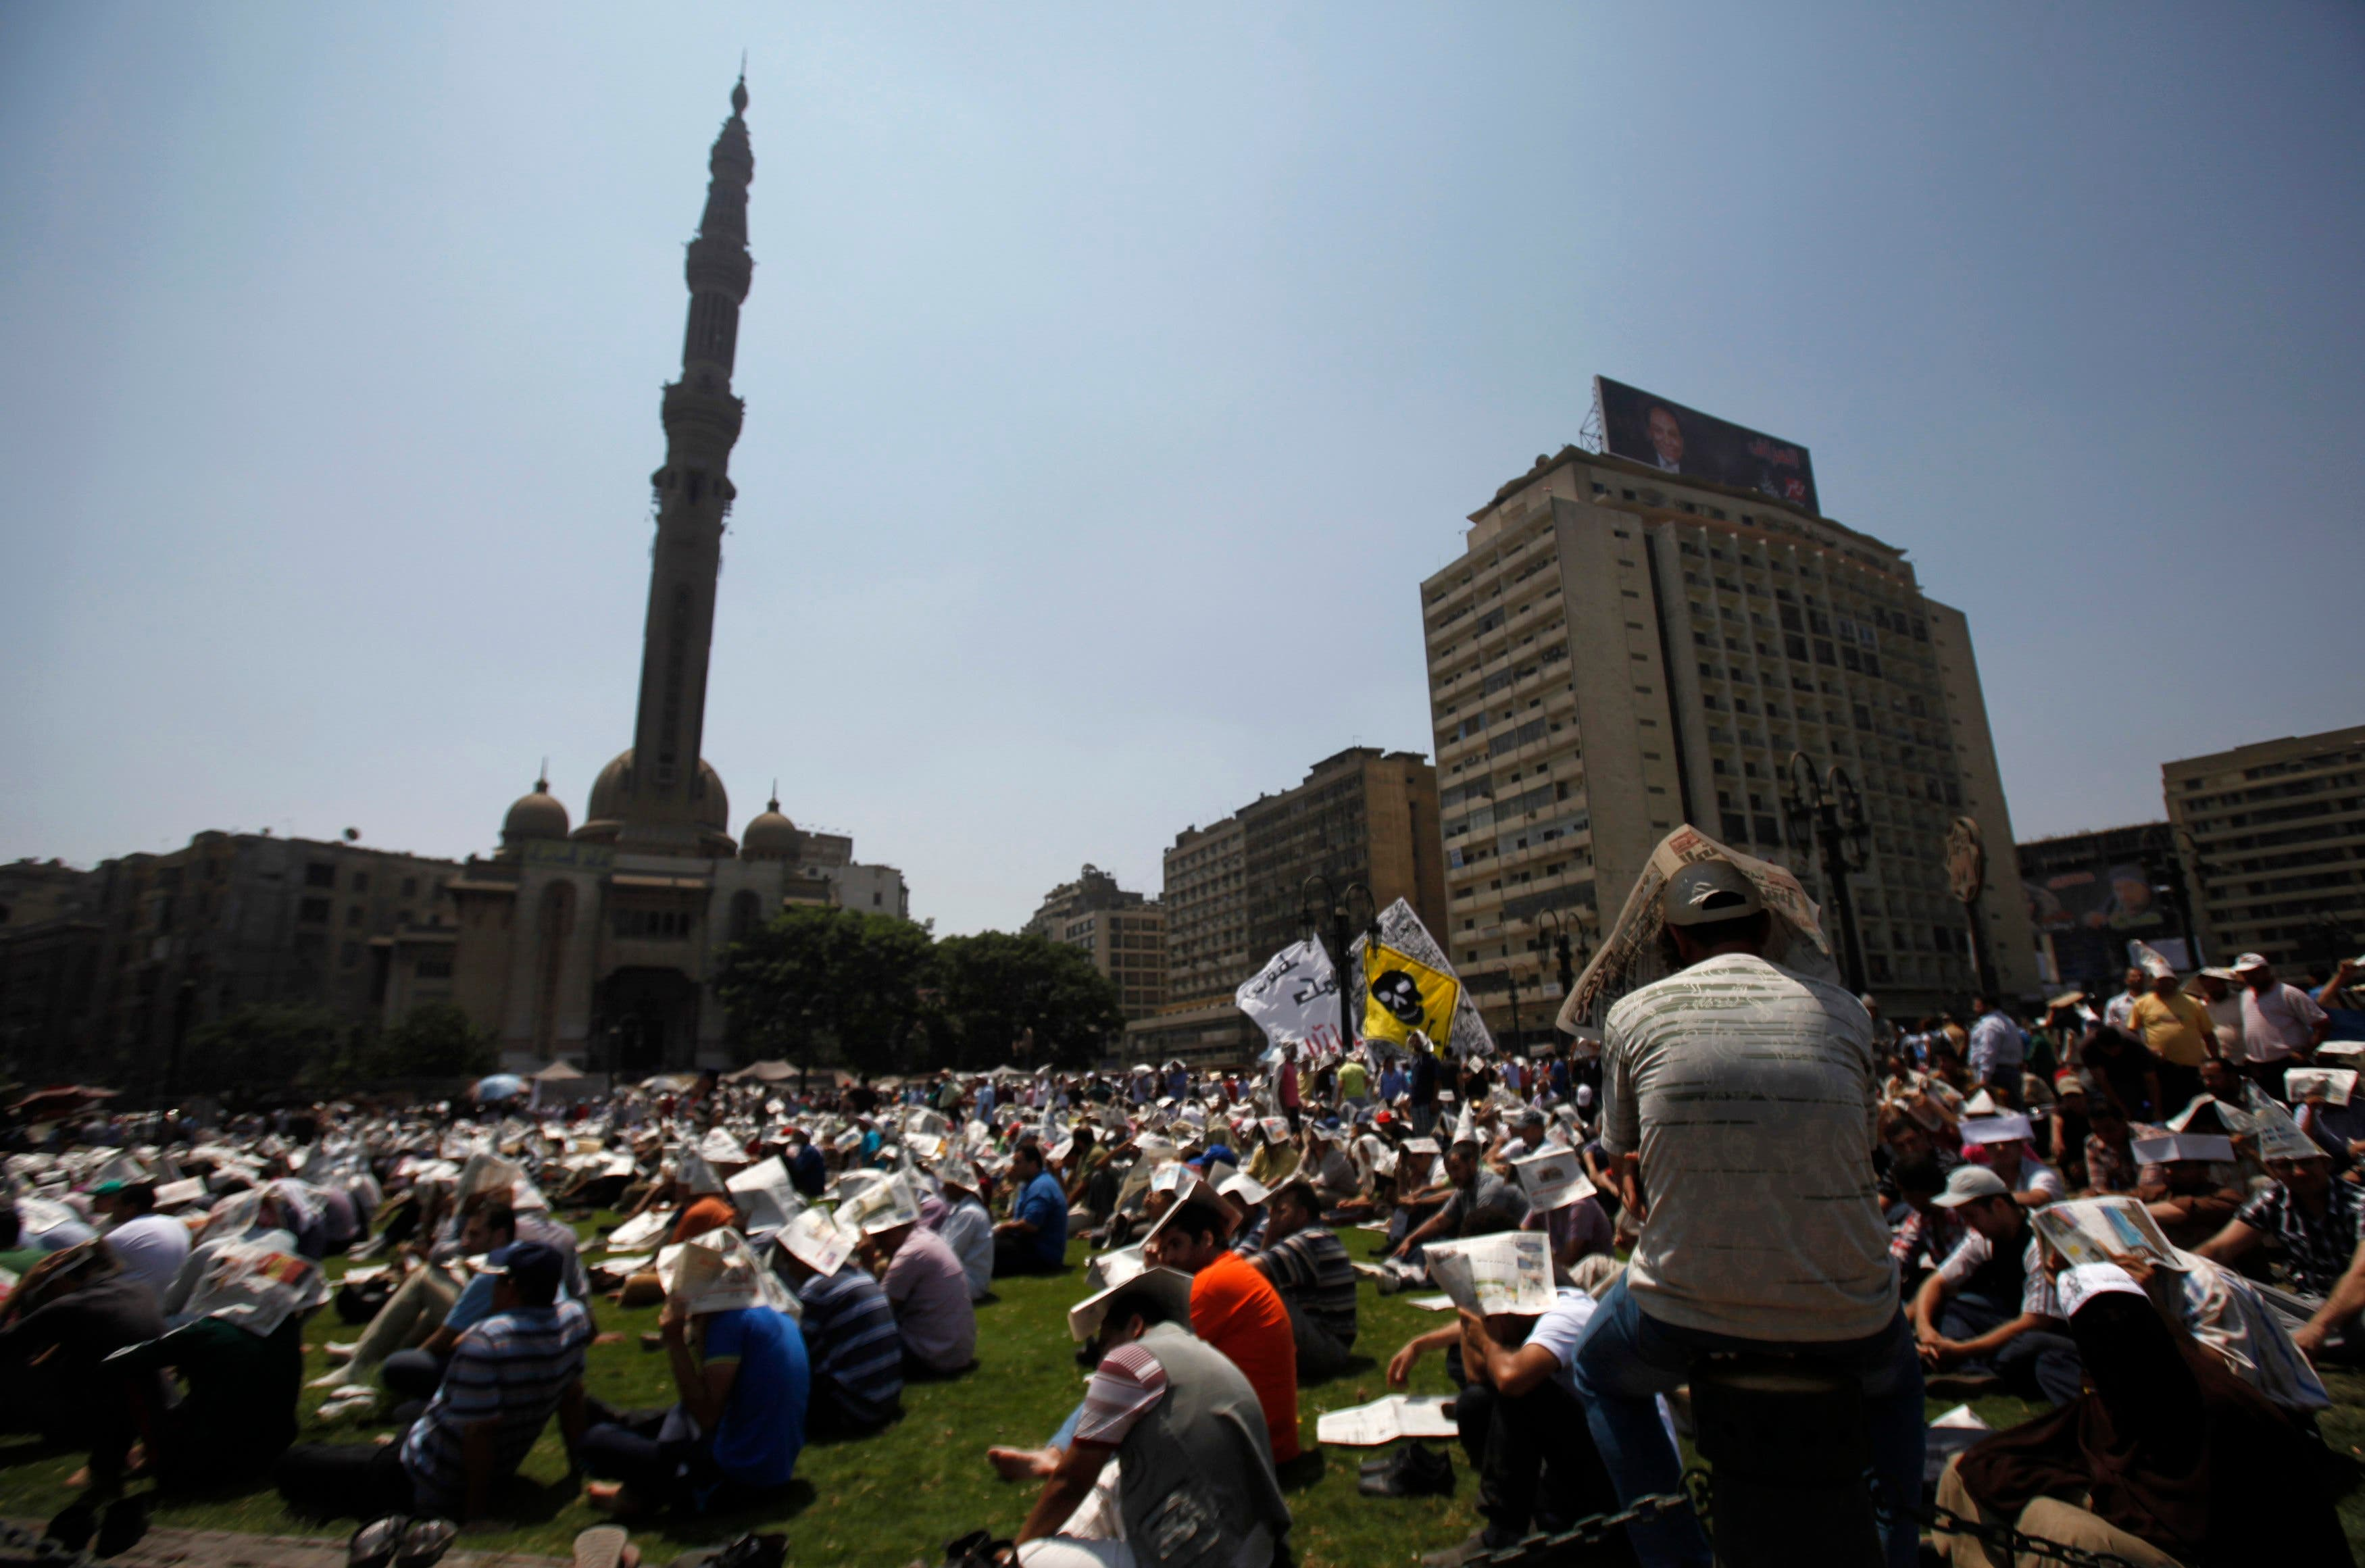 Members of the Muslim Brotherhood and supporters of ousted Egyptian President Mohamed Mursi attend Friday prayers at Ramses Square in Cairo August 16, 2013. (Reuters)